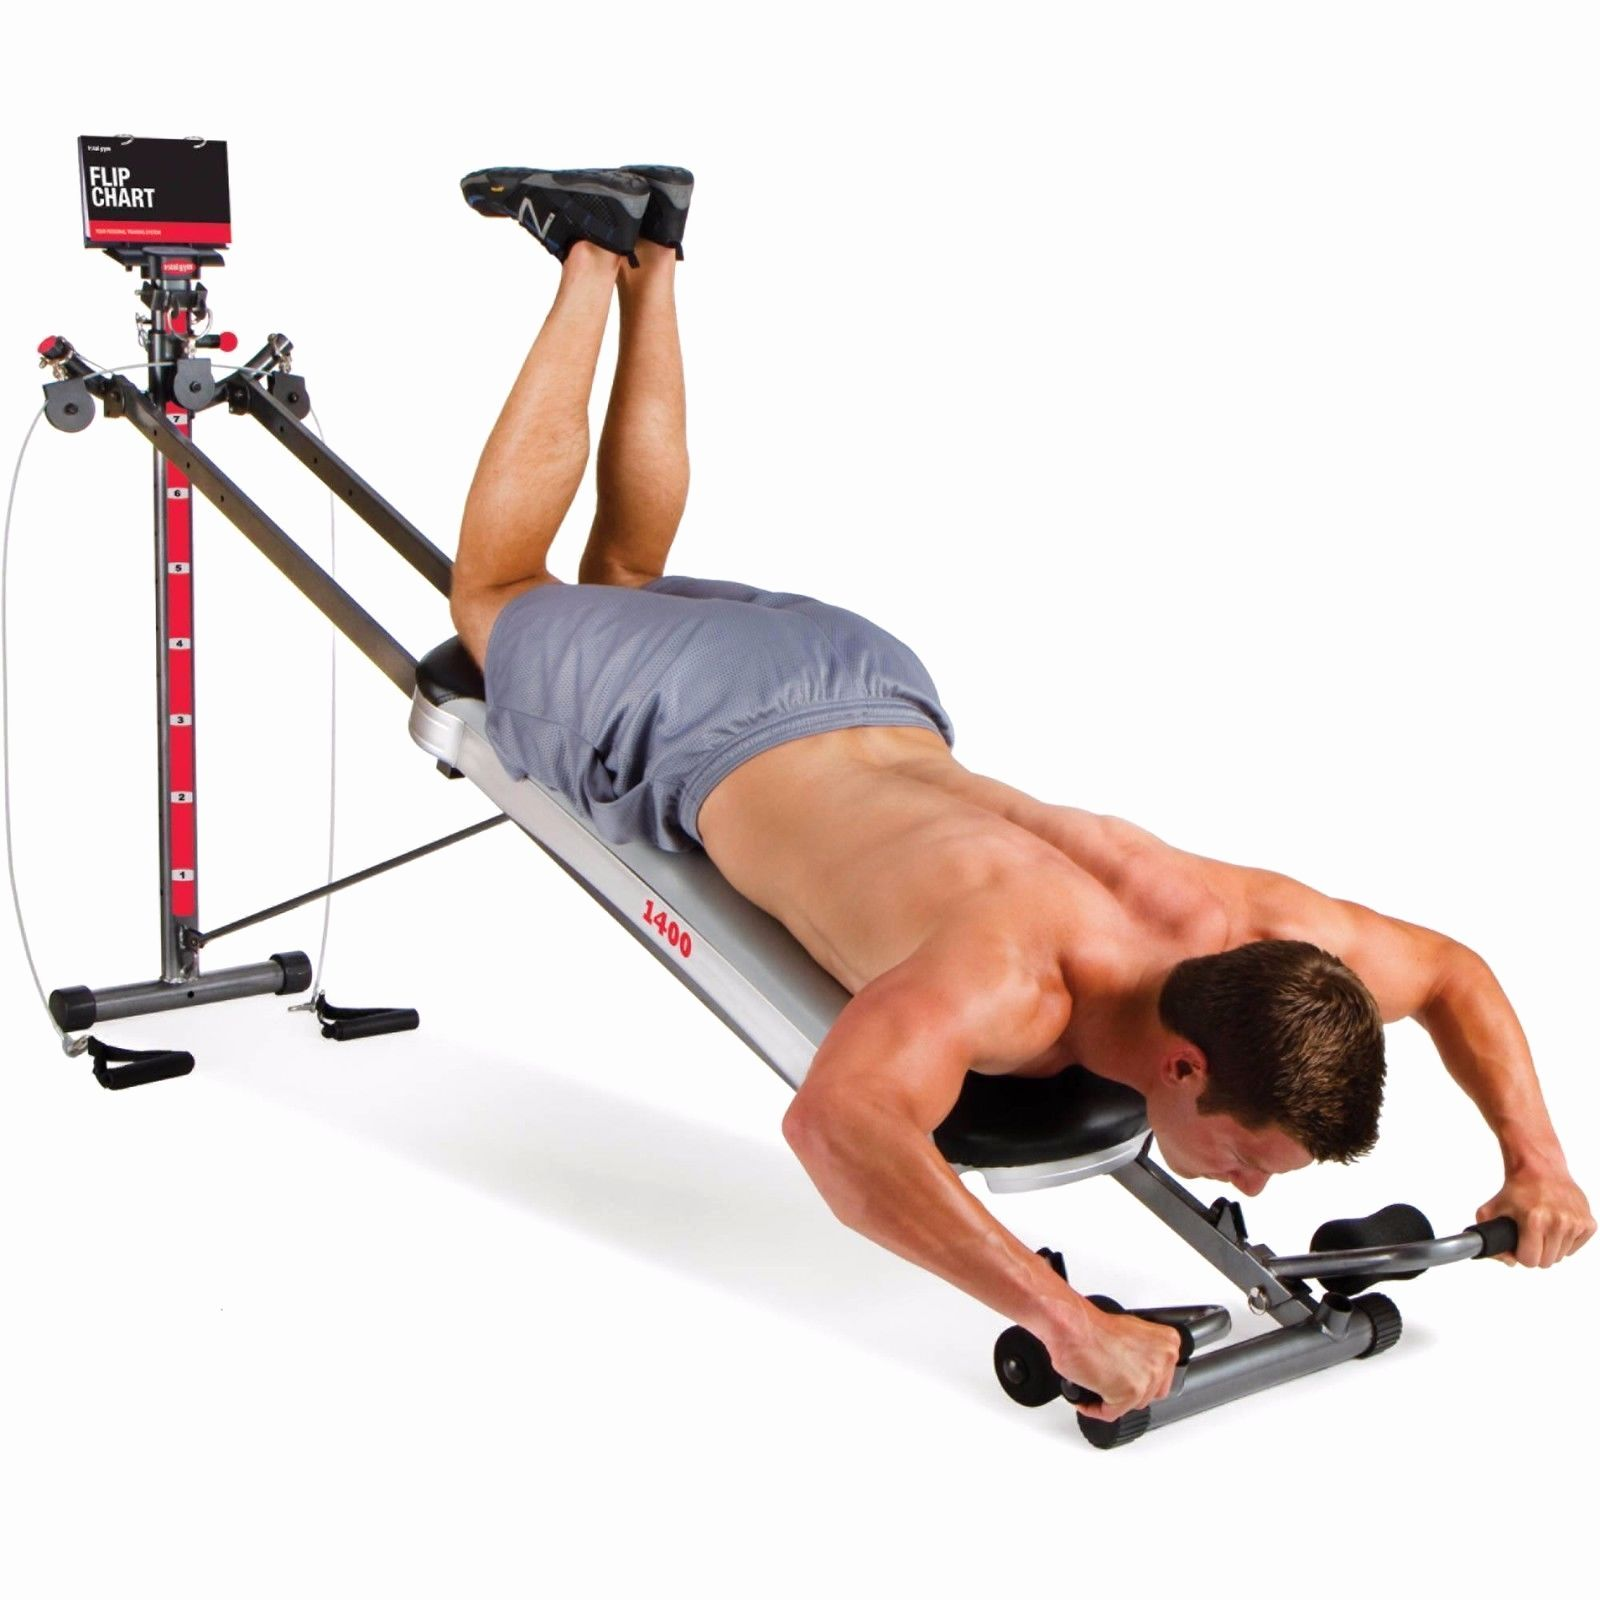 Prototypical Total Gym Exercise Weider Ultimate Body Weider Ultimate Body Works Workout Chart Home Gym Workout C Total Gym Total Gym Workouts Gym Workout Chart